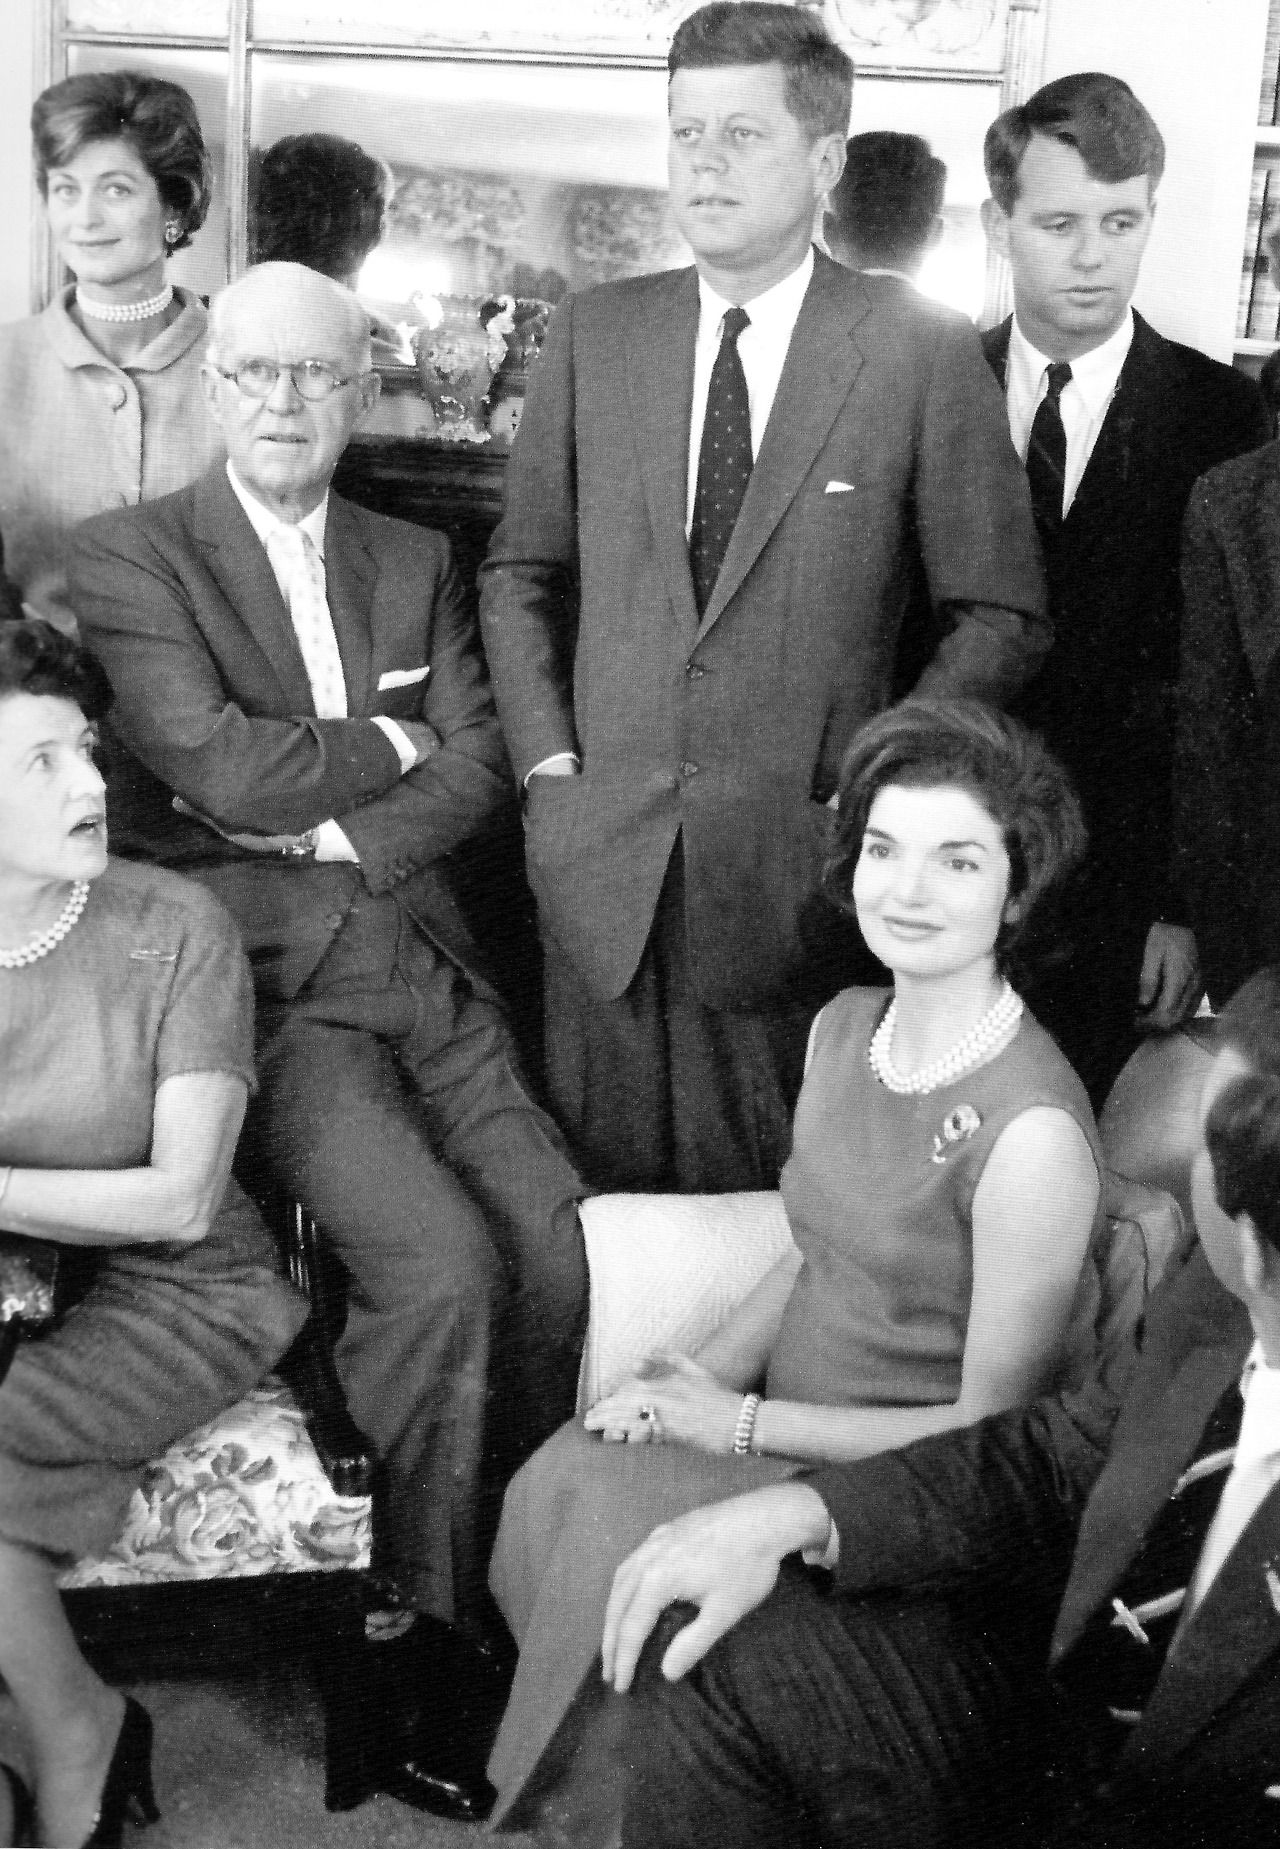 The Kennedys caught off-gaurd during a sitting for a family portrait.